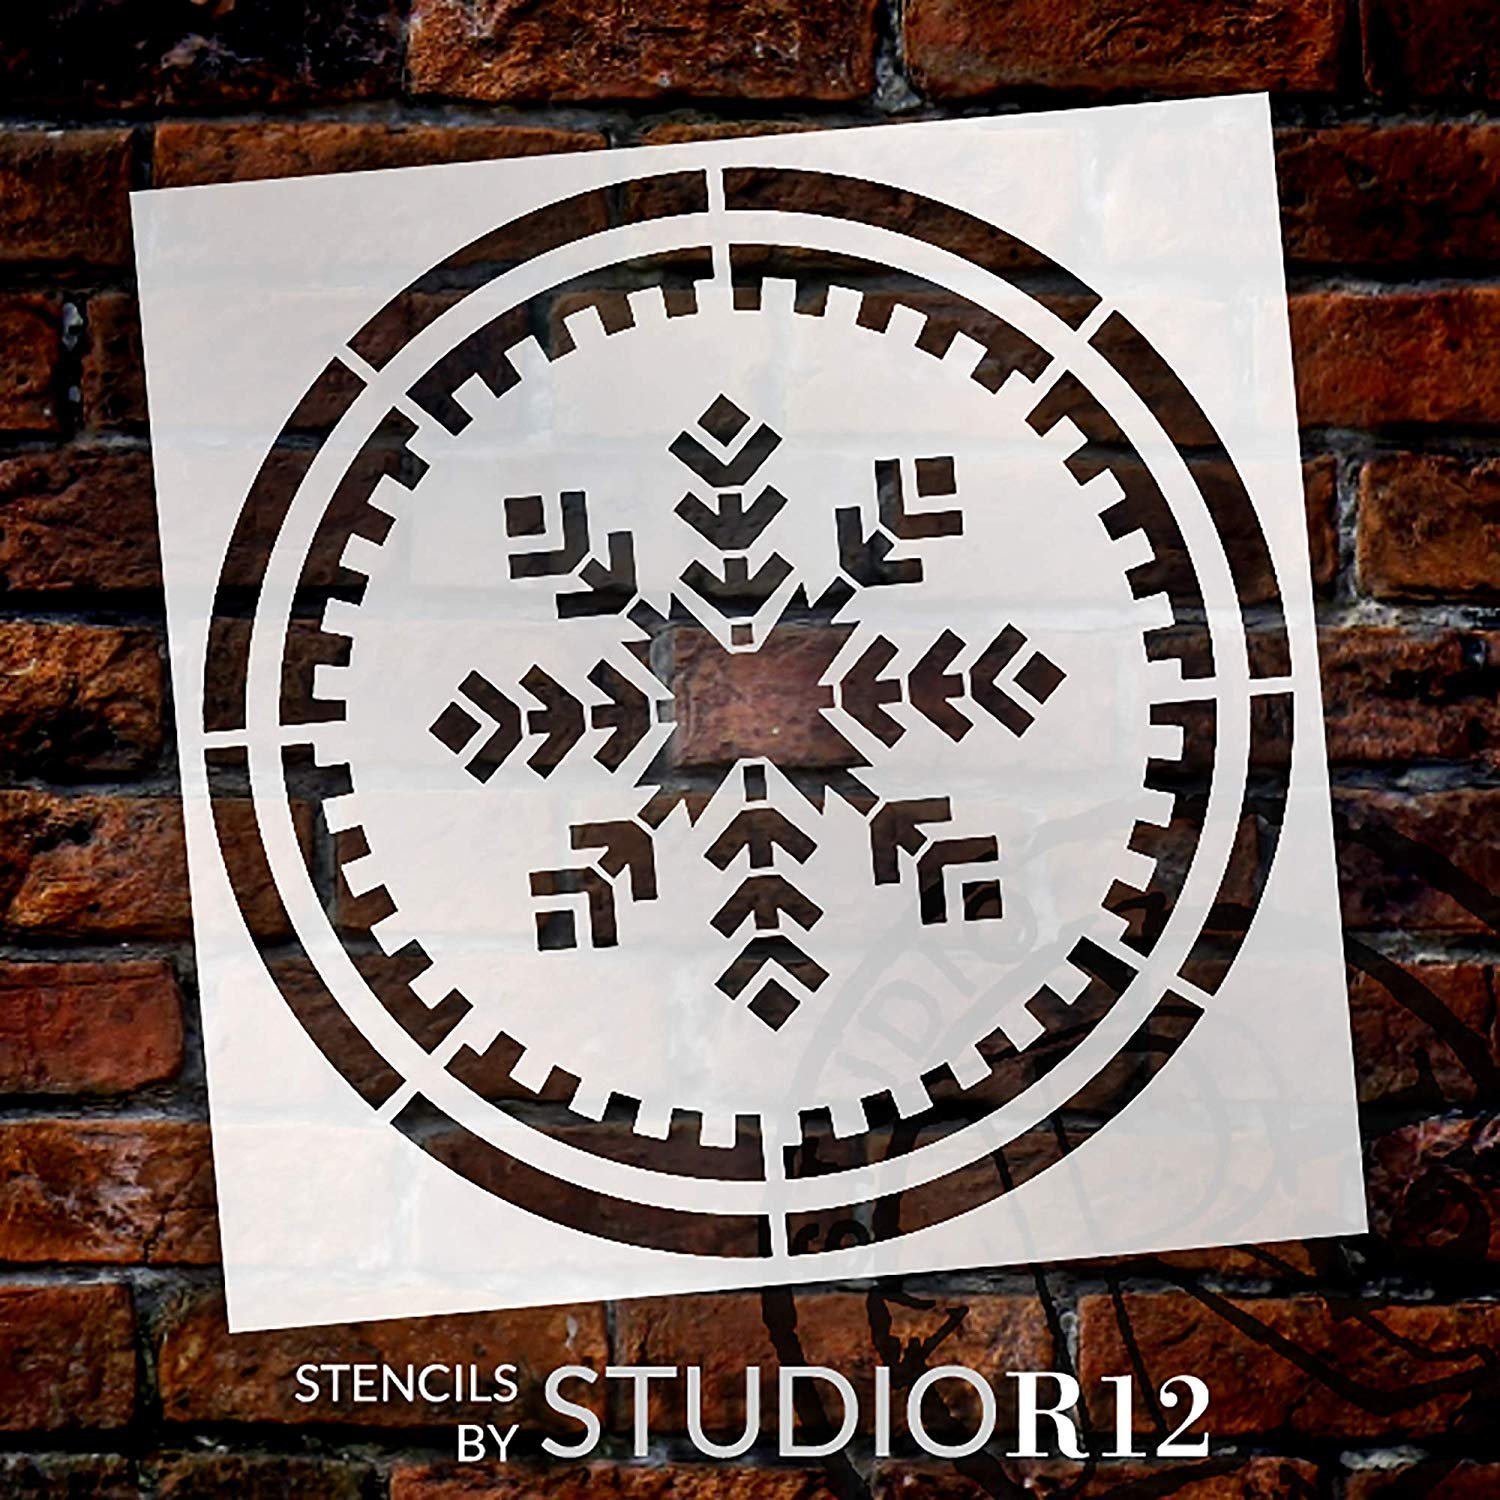 Snowflake in a Circle Stencil by StudioR12   DIY Rustic Christmas Winter Home Decor   Simple Modern Geometric Word Art   Craft & Paint Wood Signs   Reusable Mylar Template   Select Size